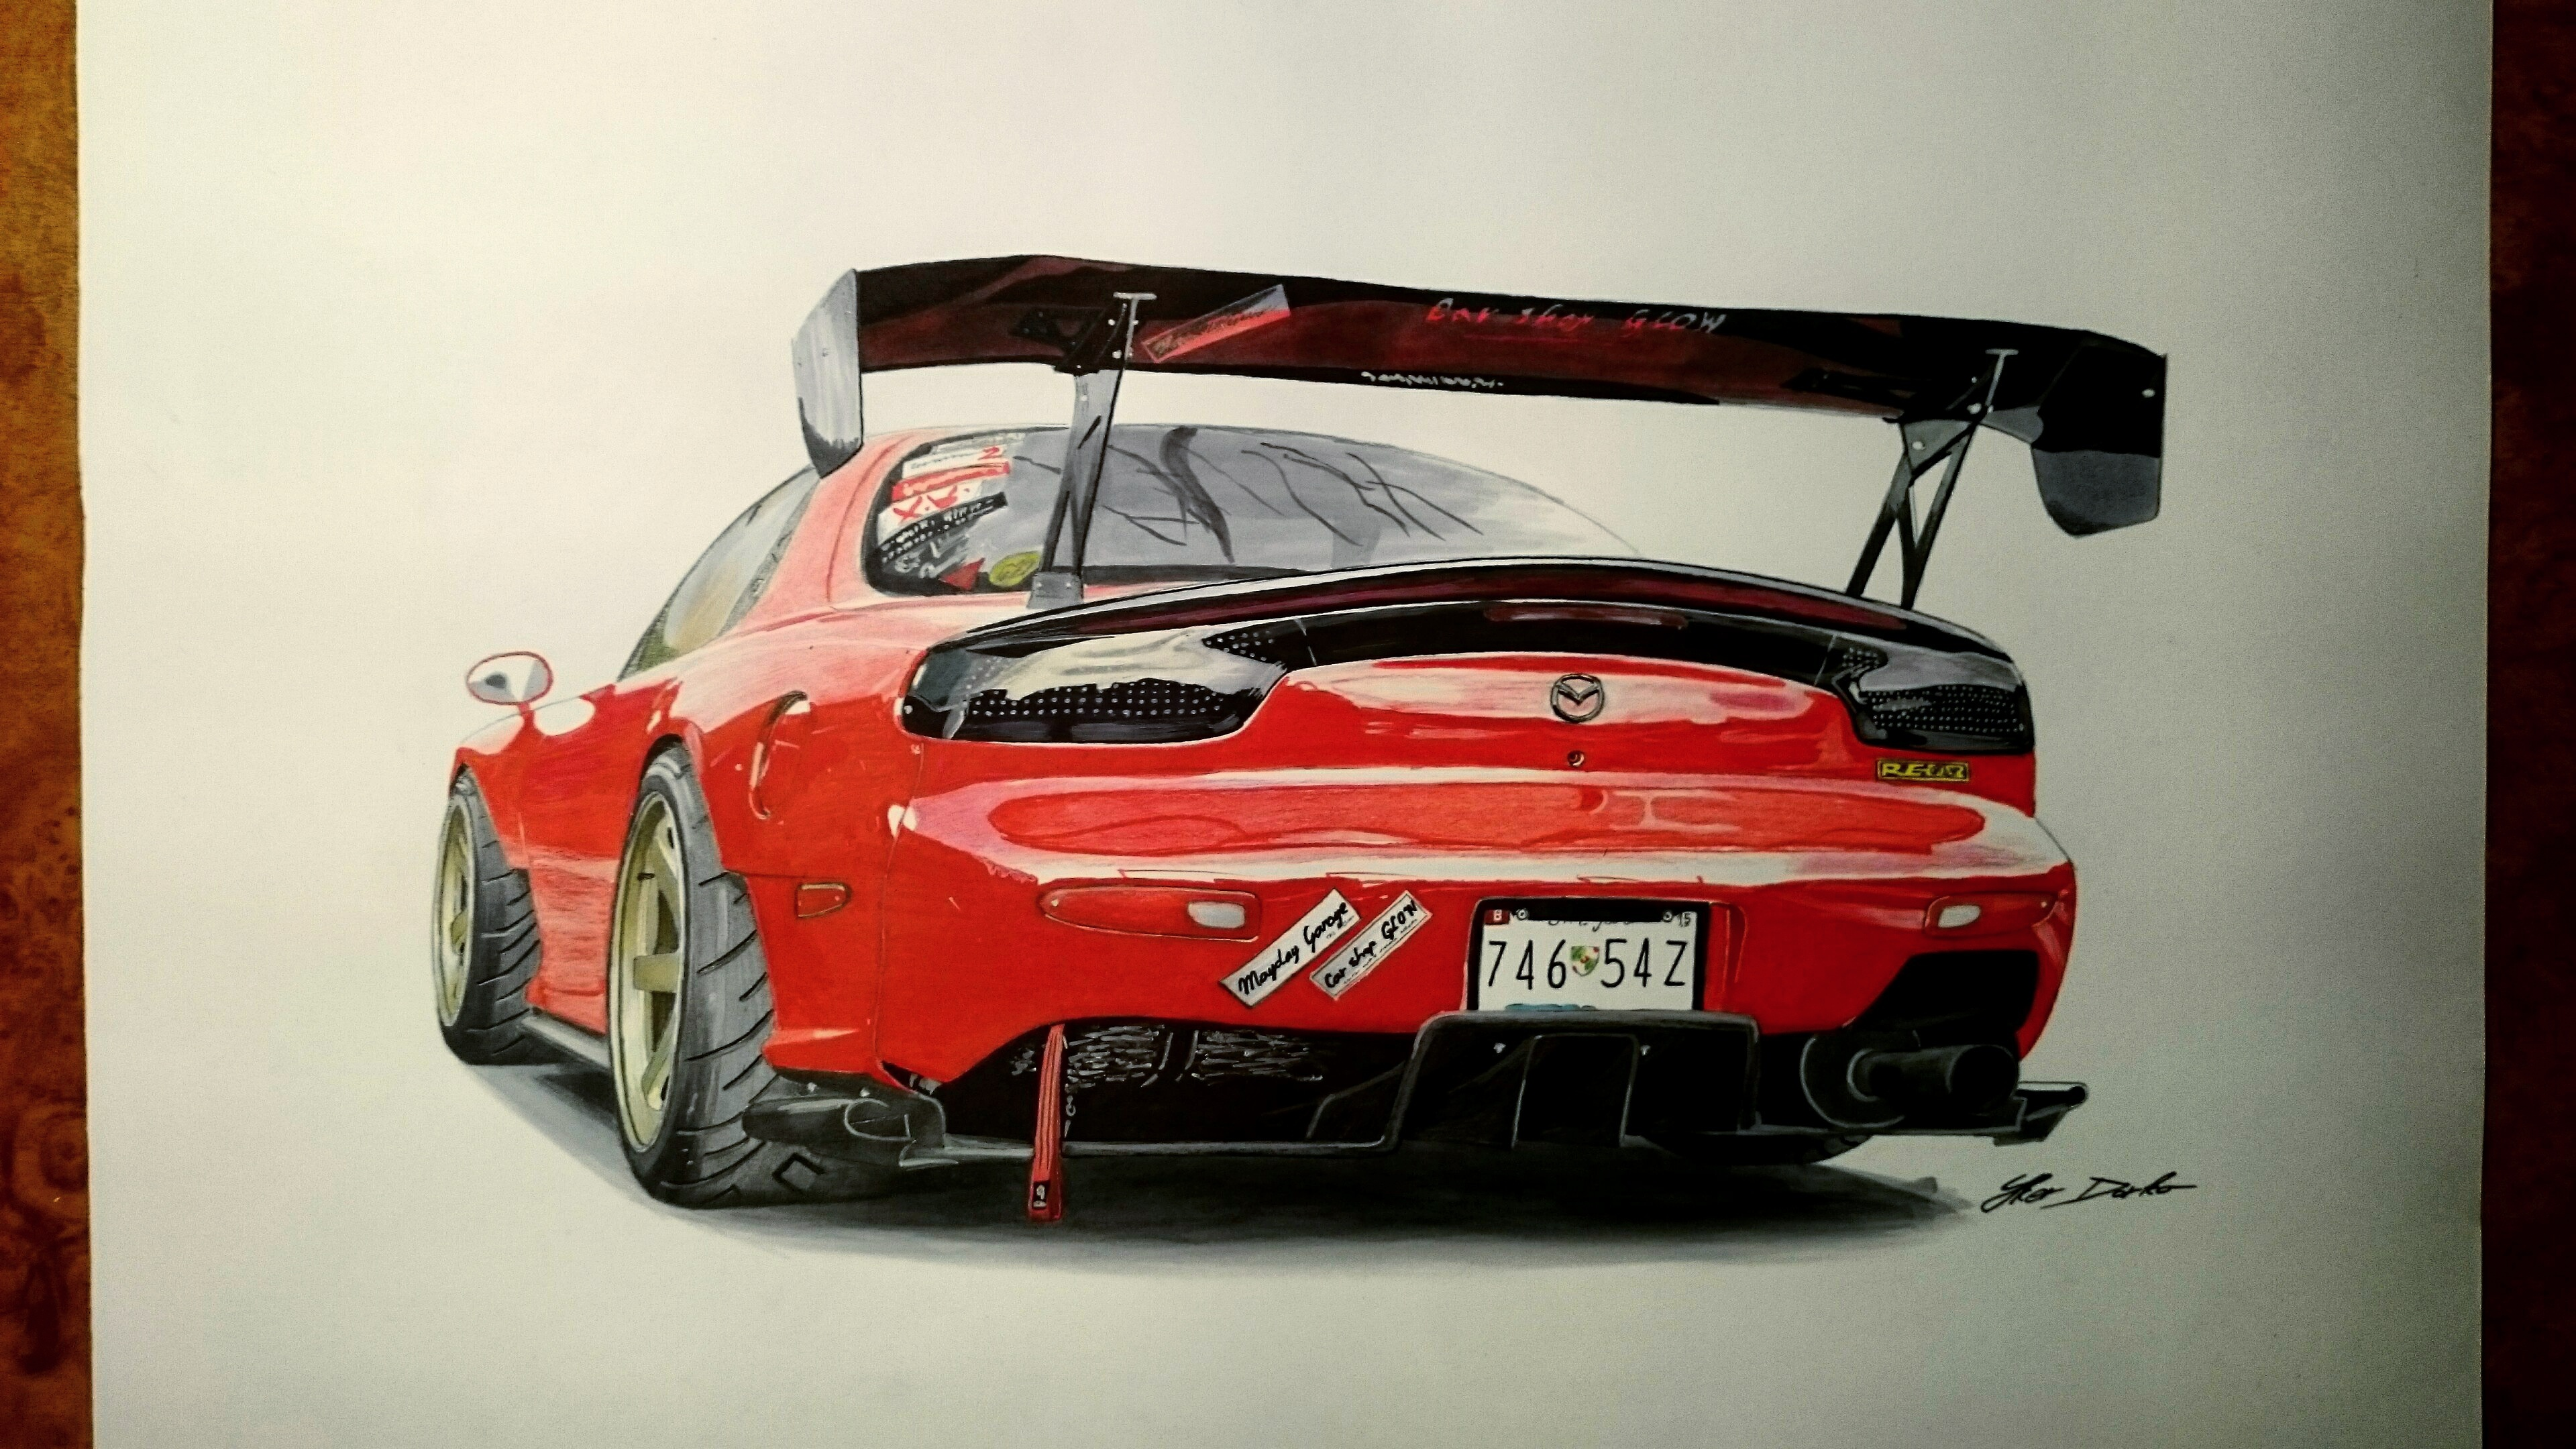 3840x2160 Mazda RX 7, 7 Hours Of Work, Fb Page Car Drawings By Iker